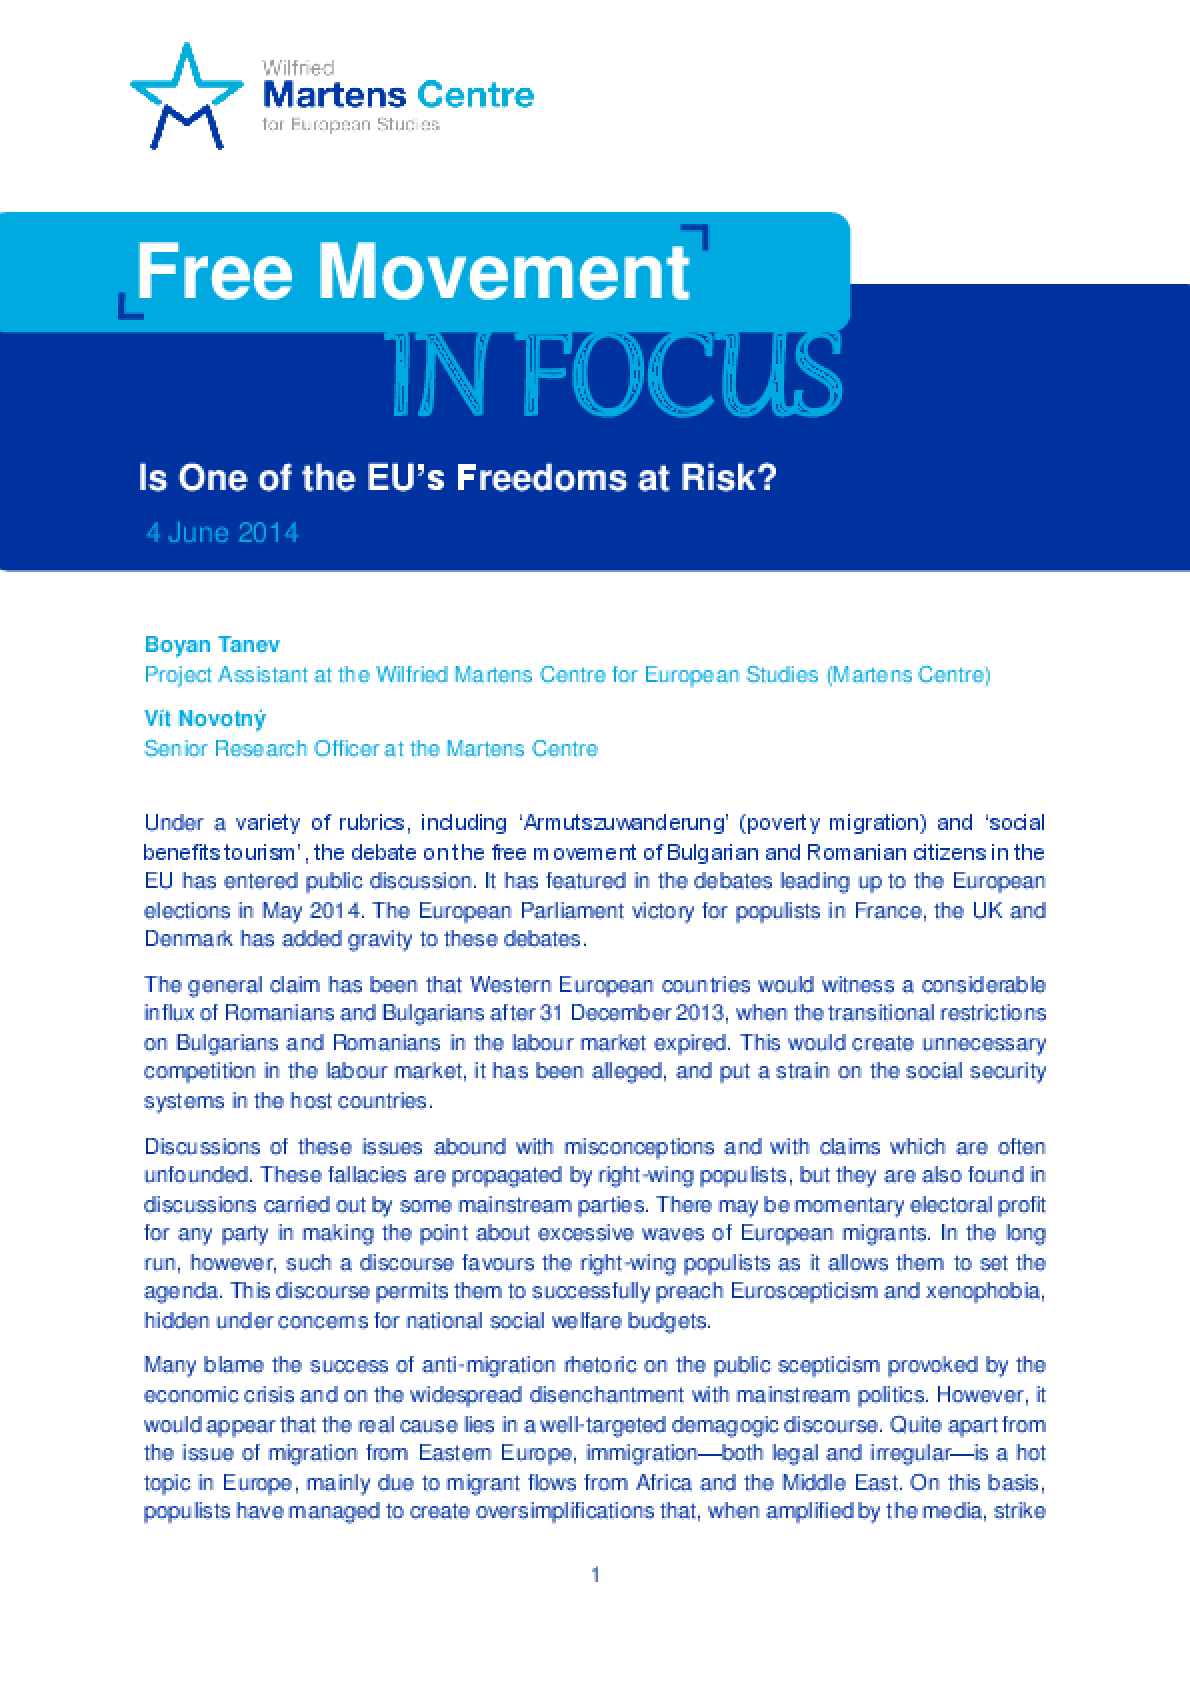 Free Movement in Focus: Is One of the EU's Freedoms at Risk?